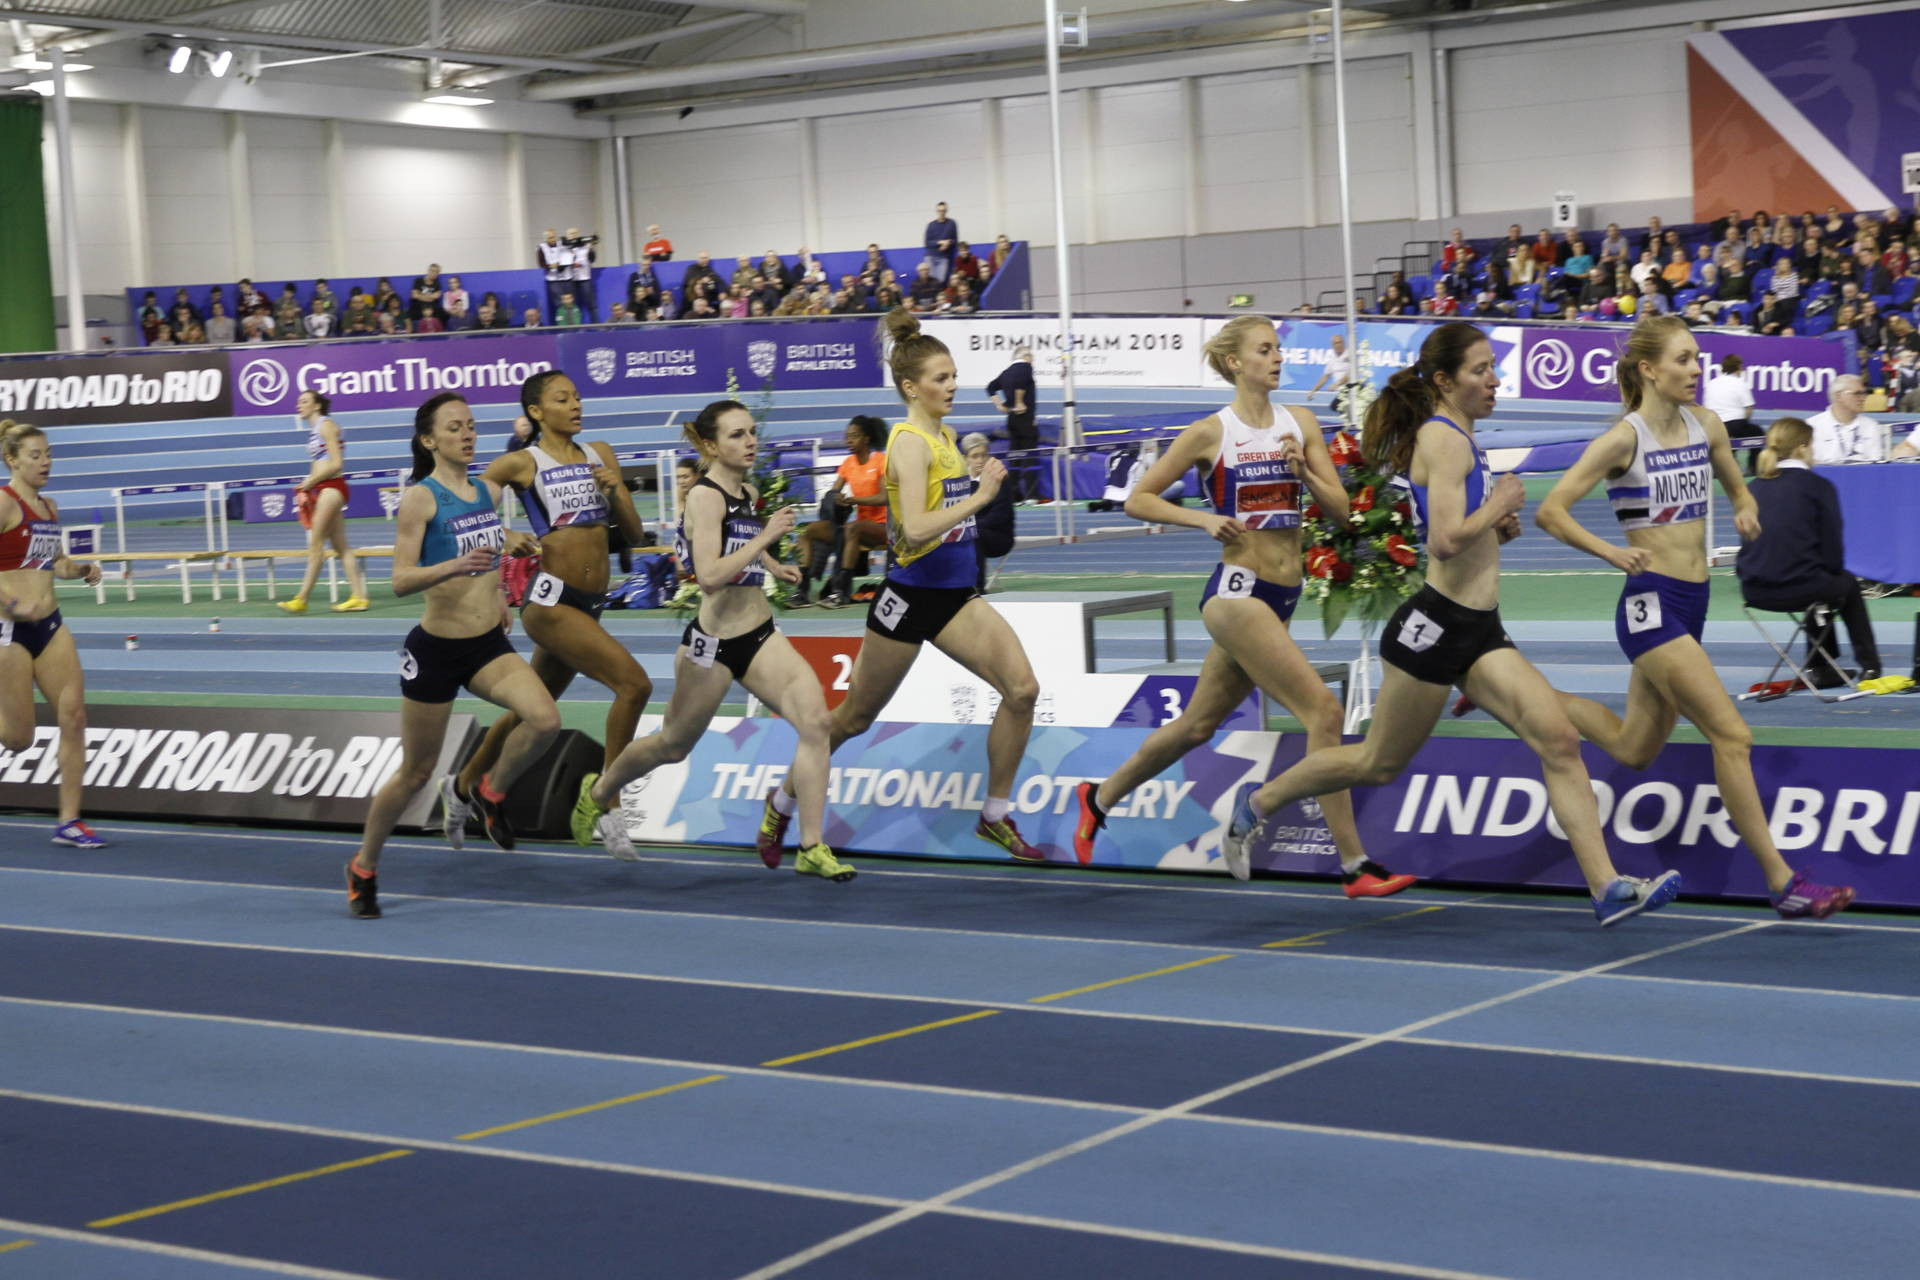 Alison Wins Silver at British Indoor Championships